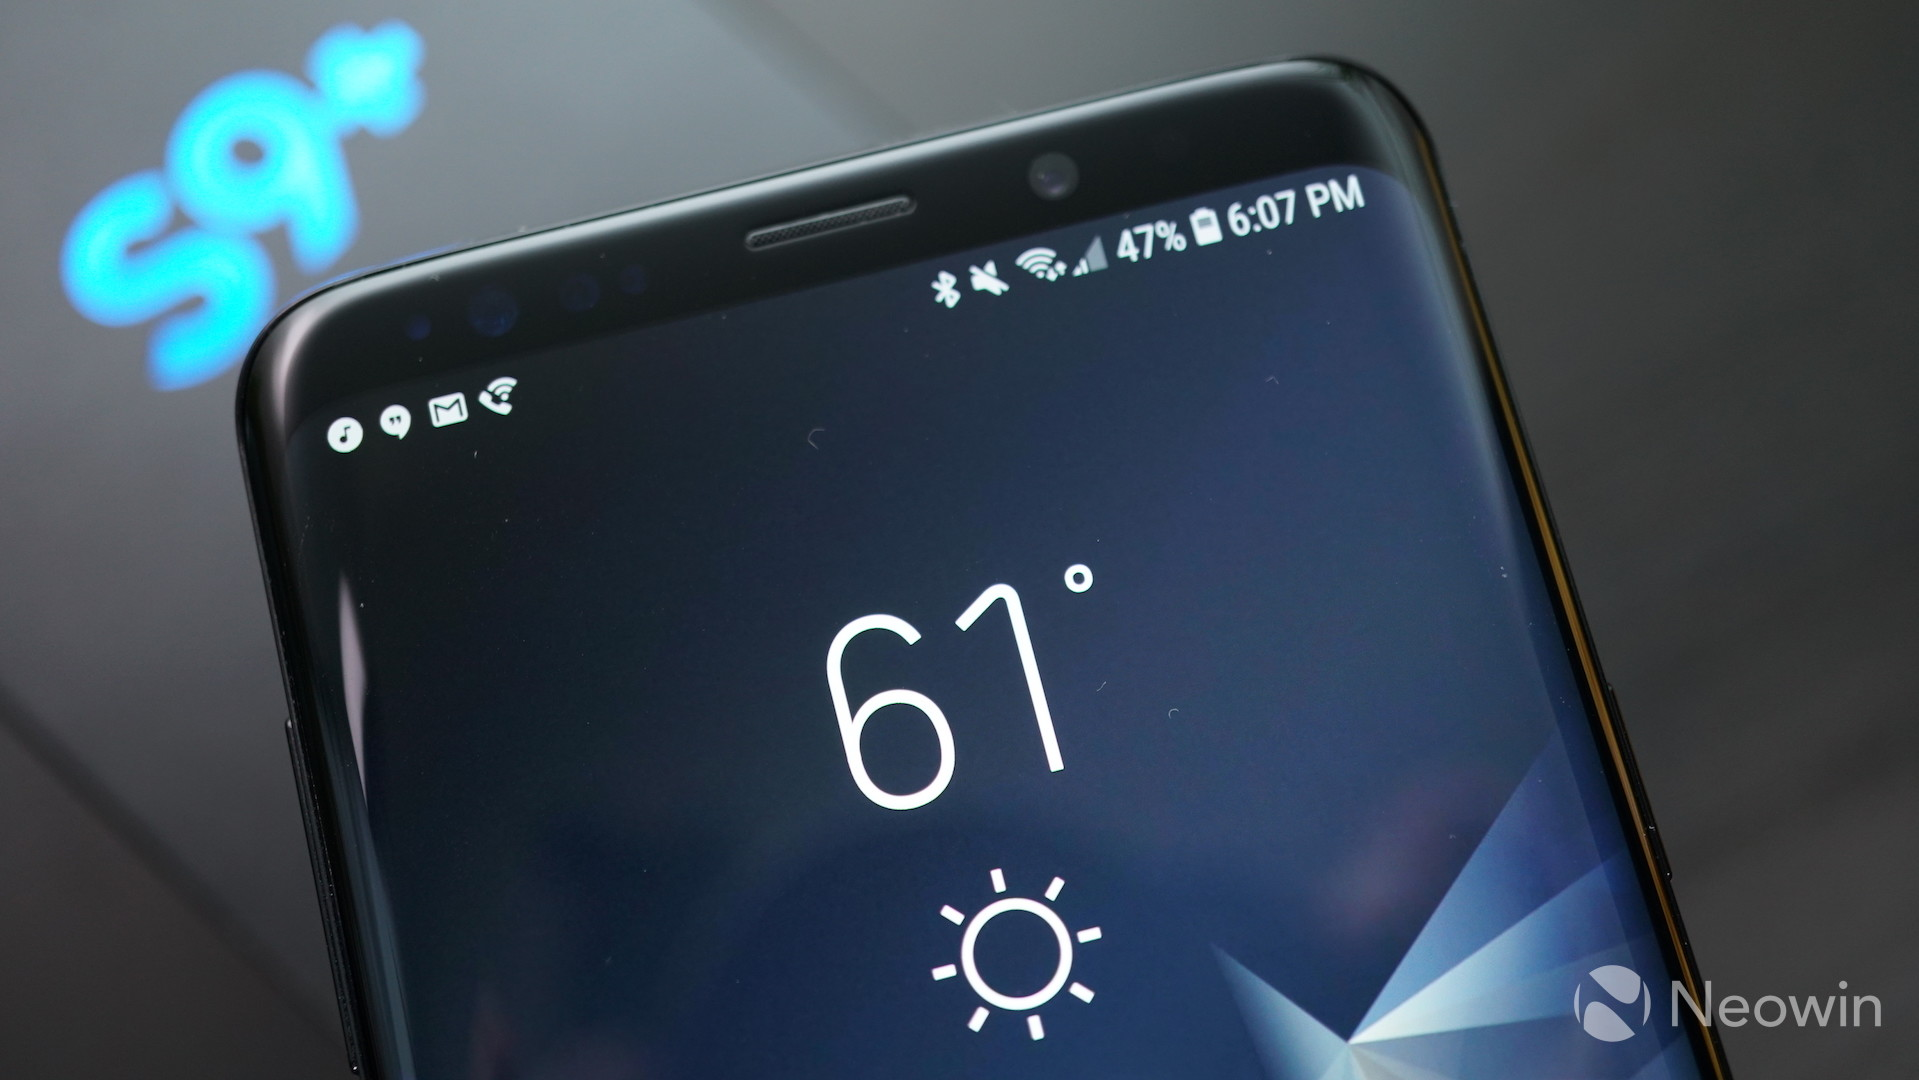 Samsung made over $50 billion in sales this quarter - Neowin